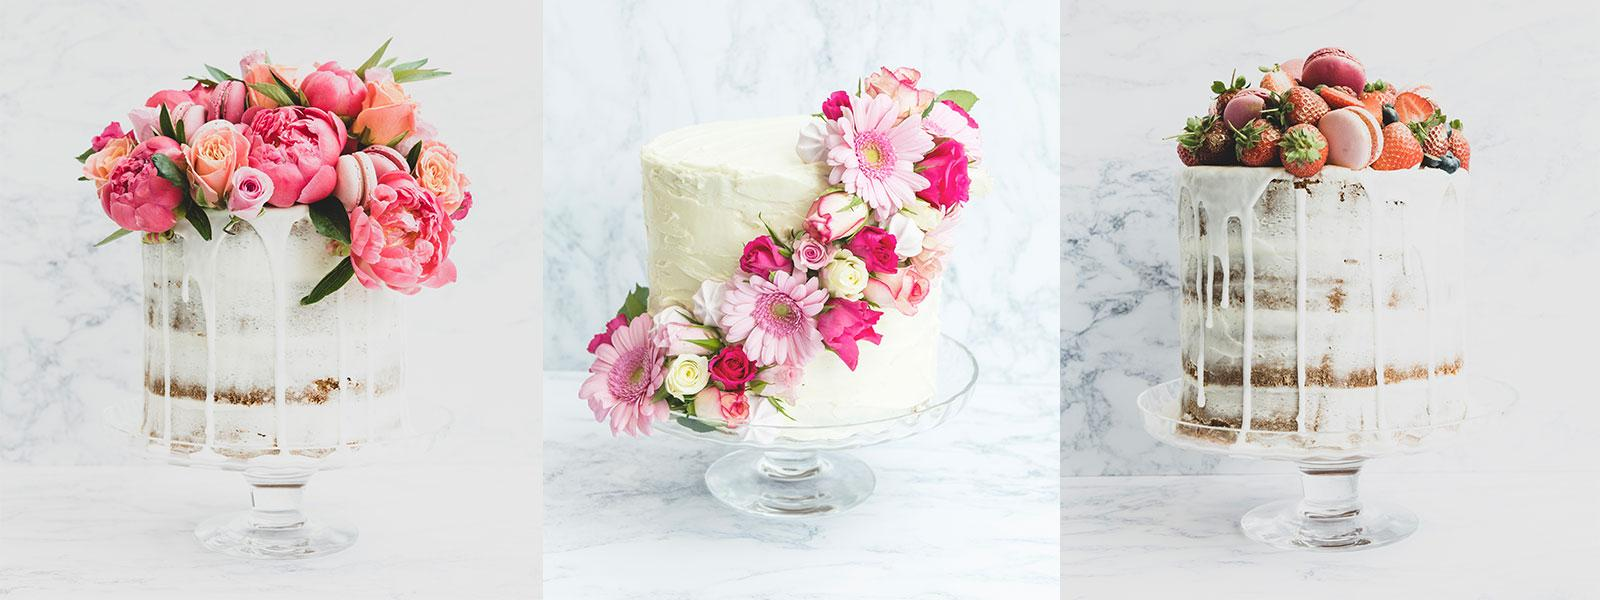 3 DIY wedding cakes all with pink roses